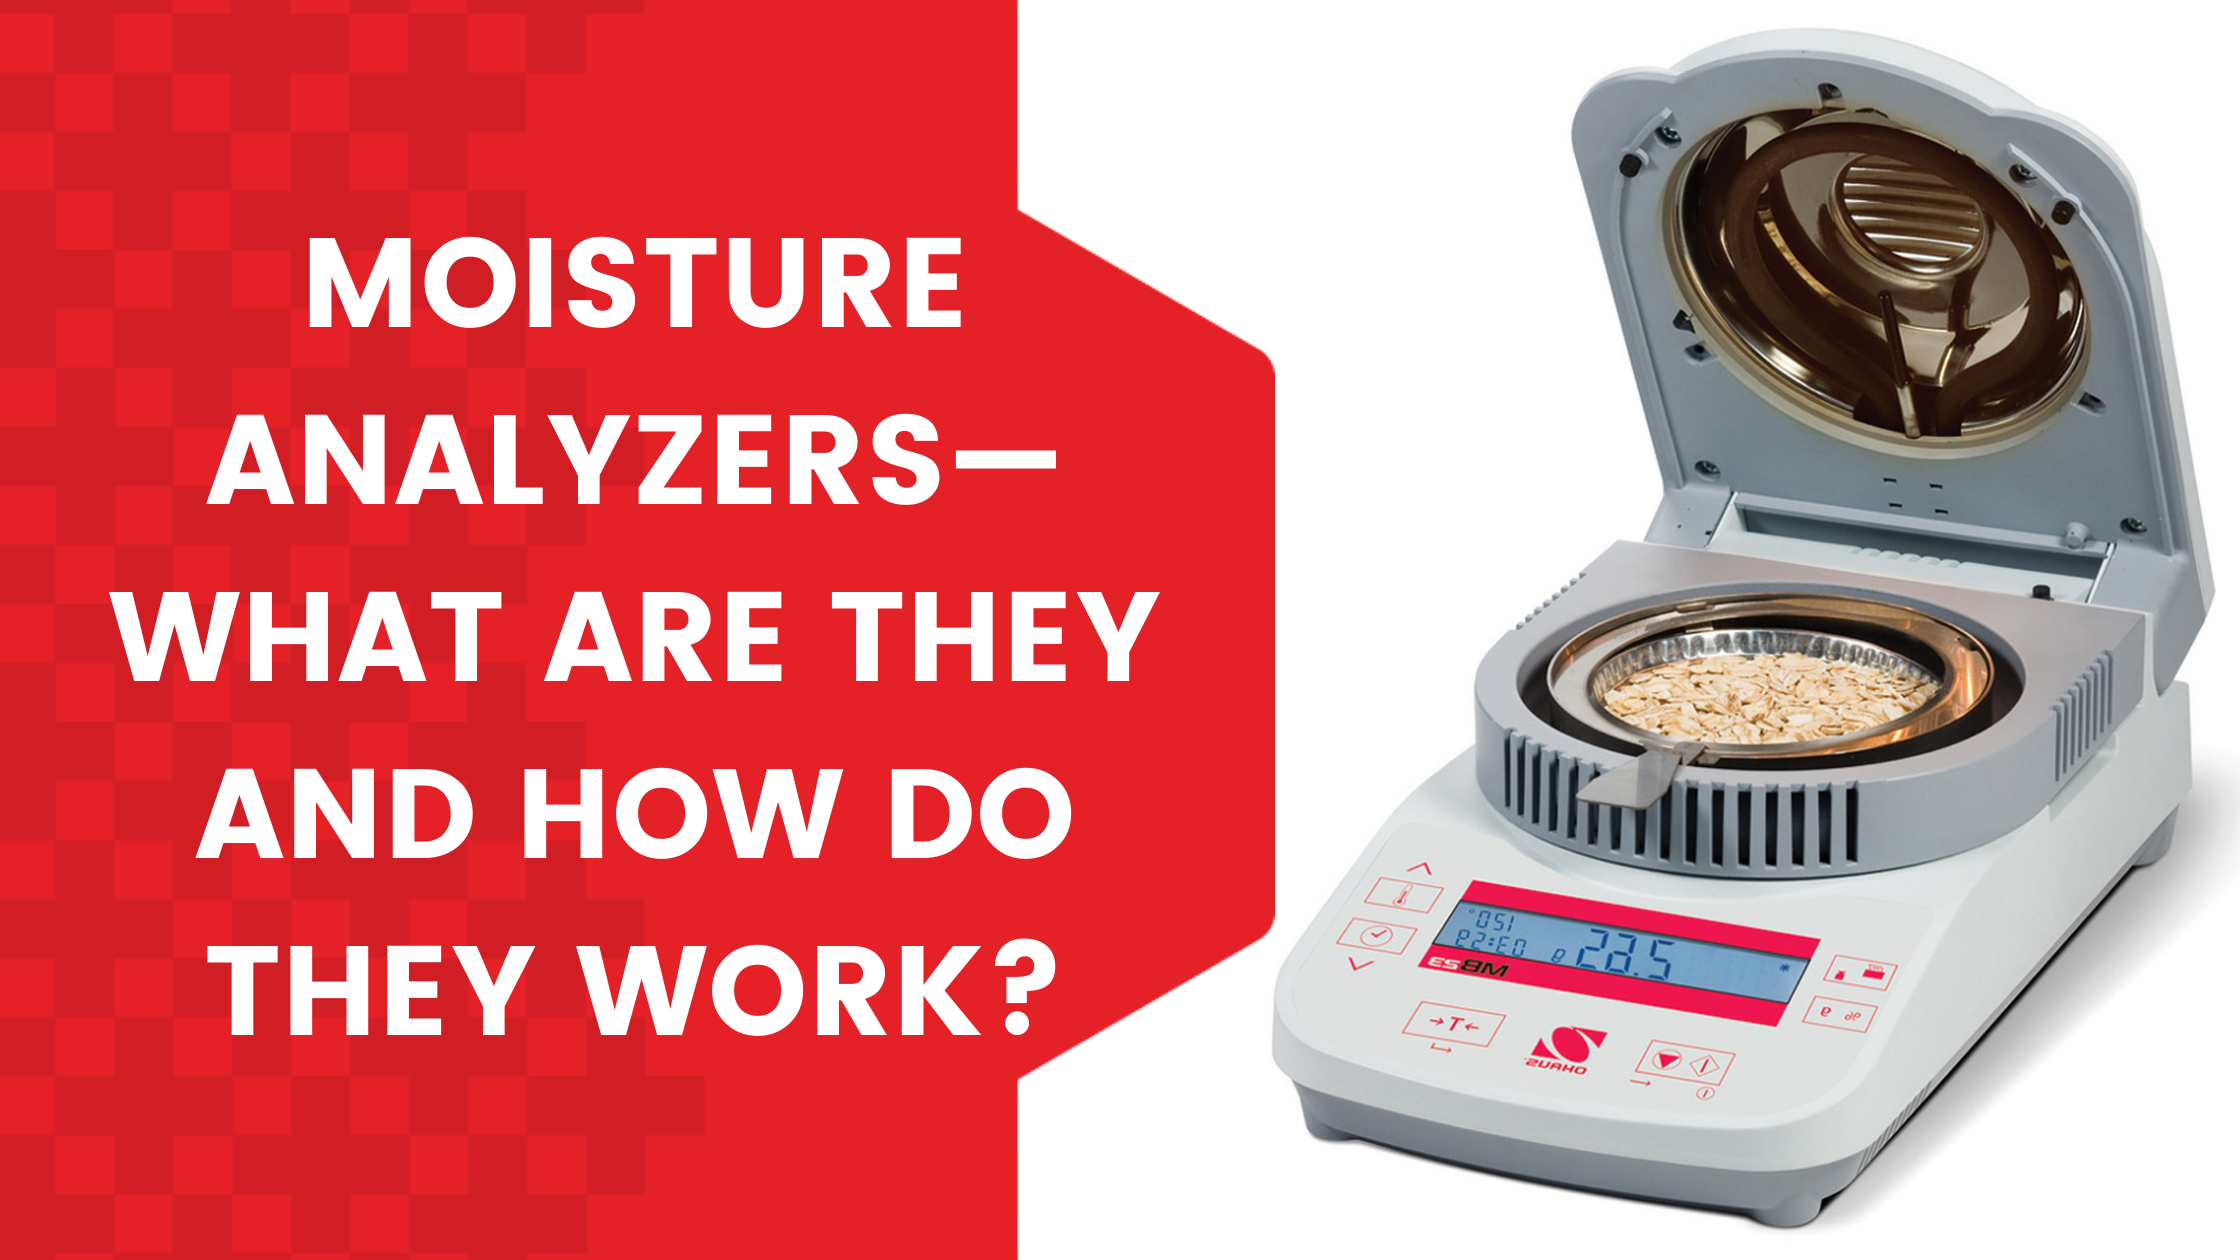 Moisture Analyzers—What Are They and How do They Work?